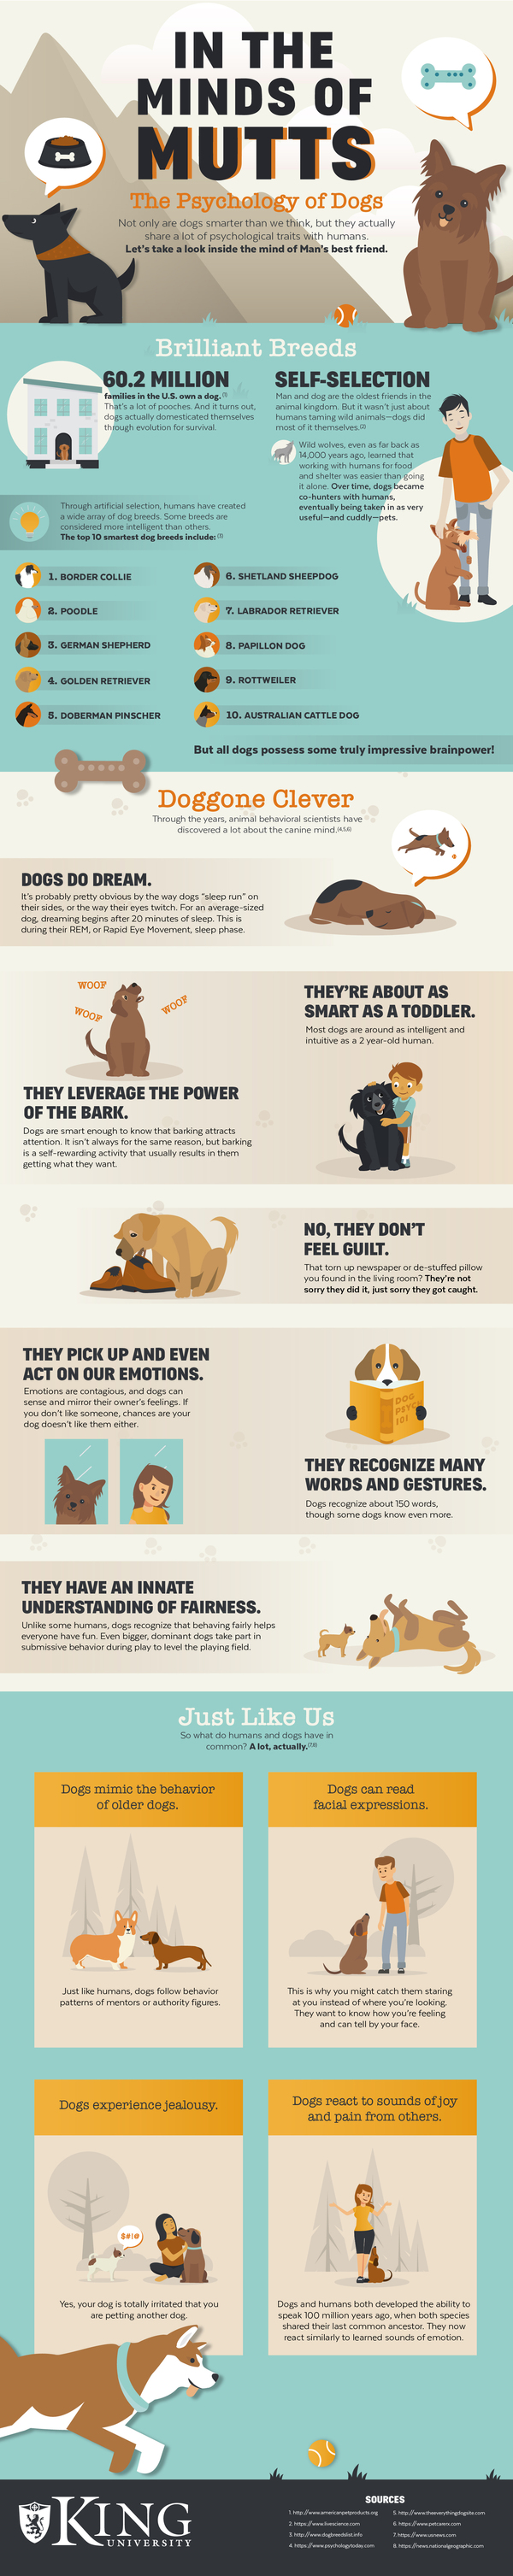 In the Mind of Mutts: The Psychology of Dogs